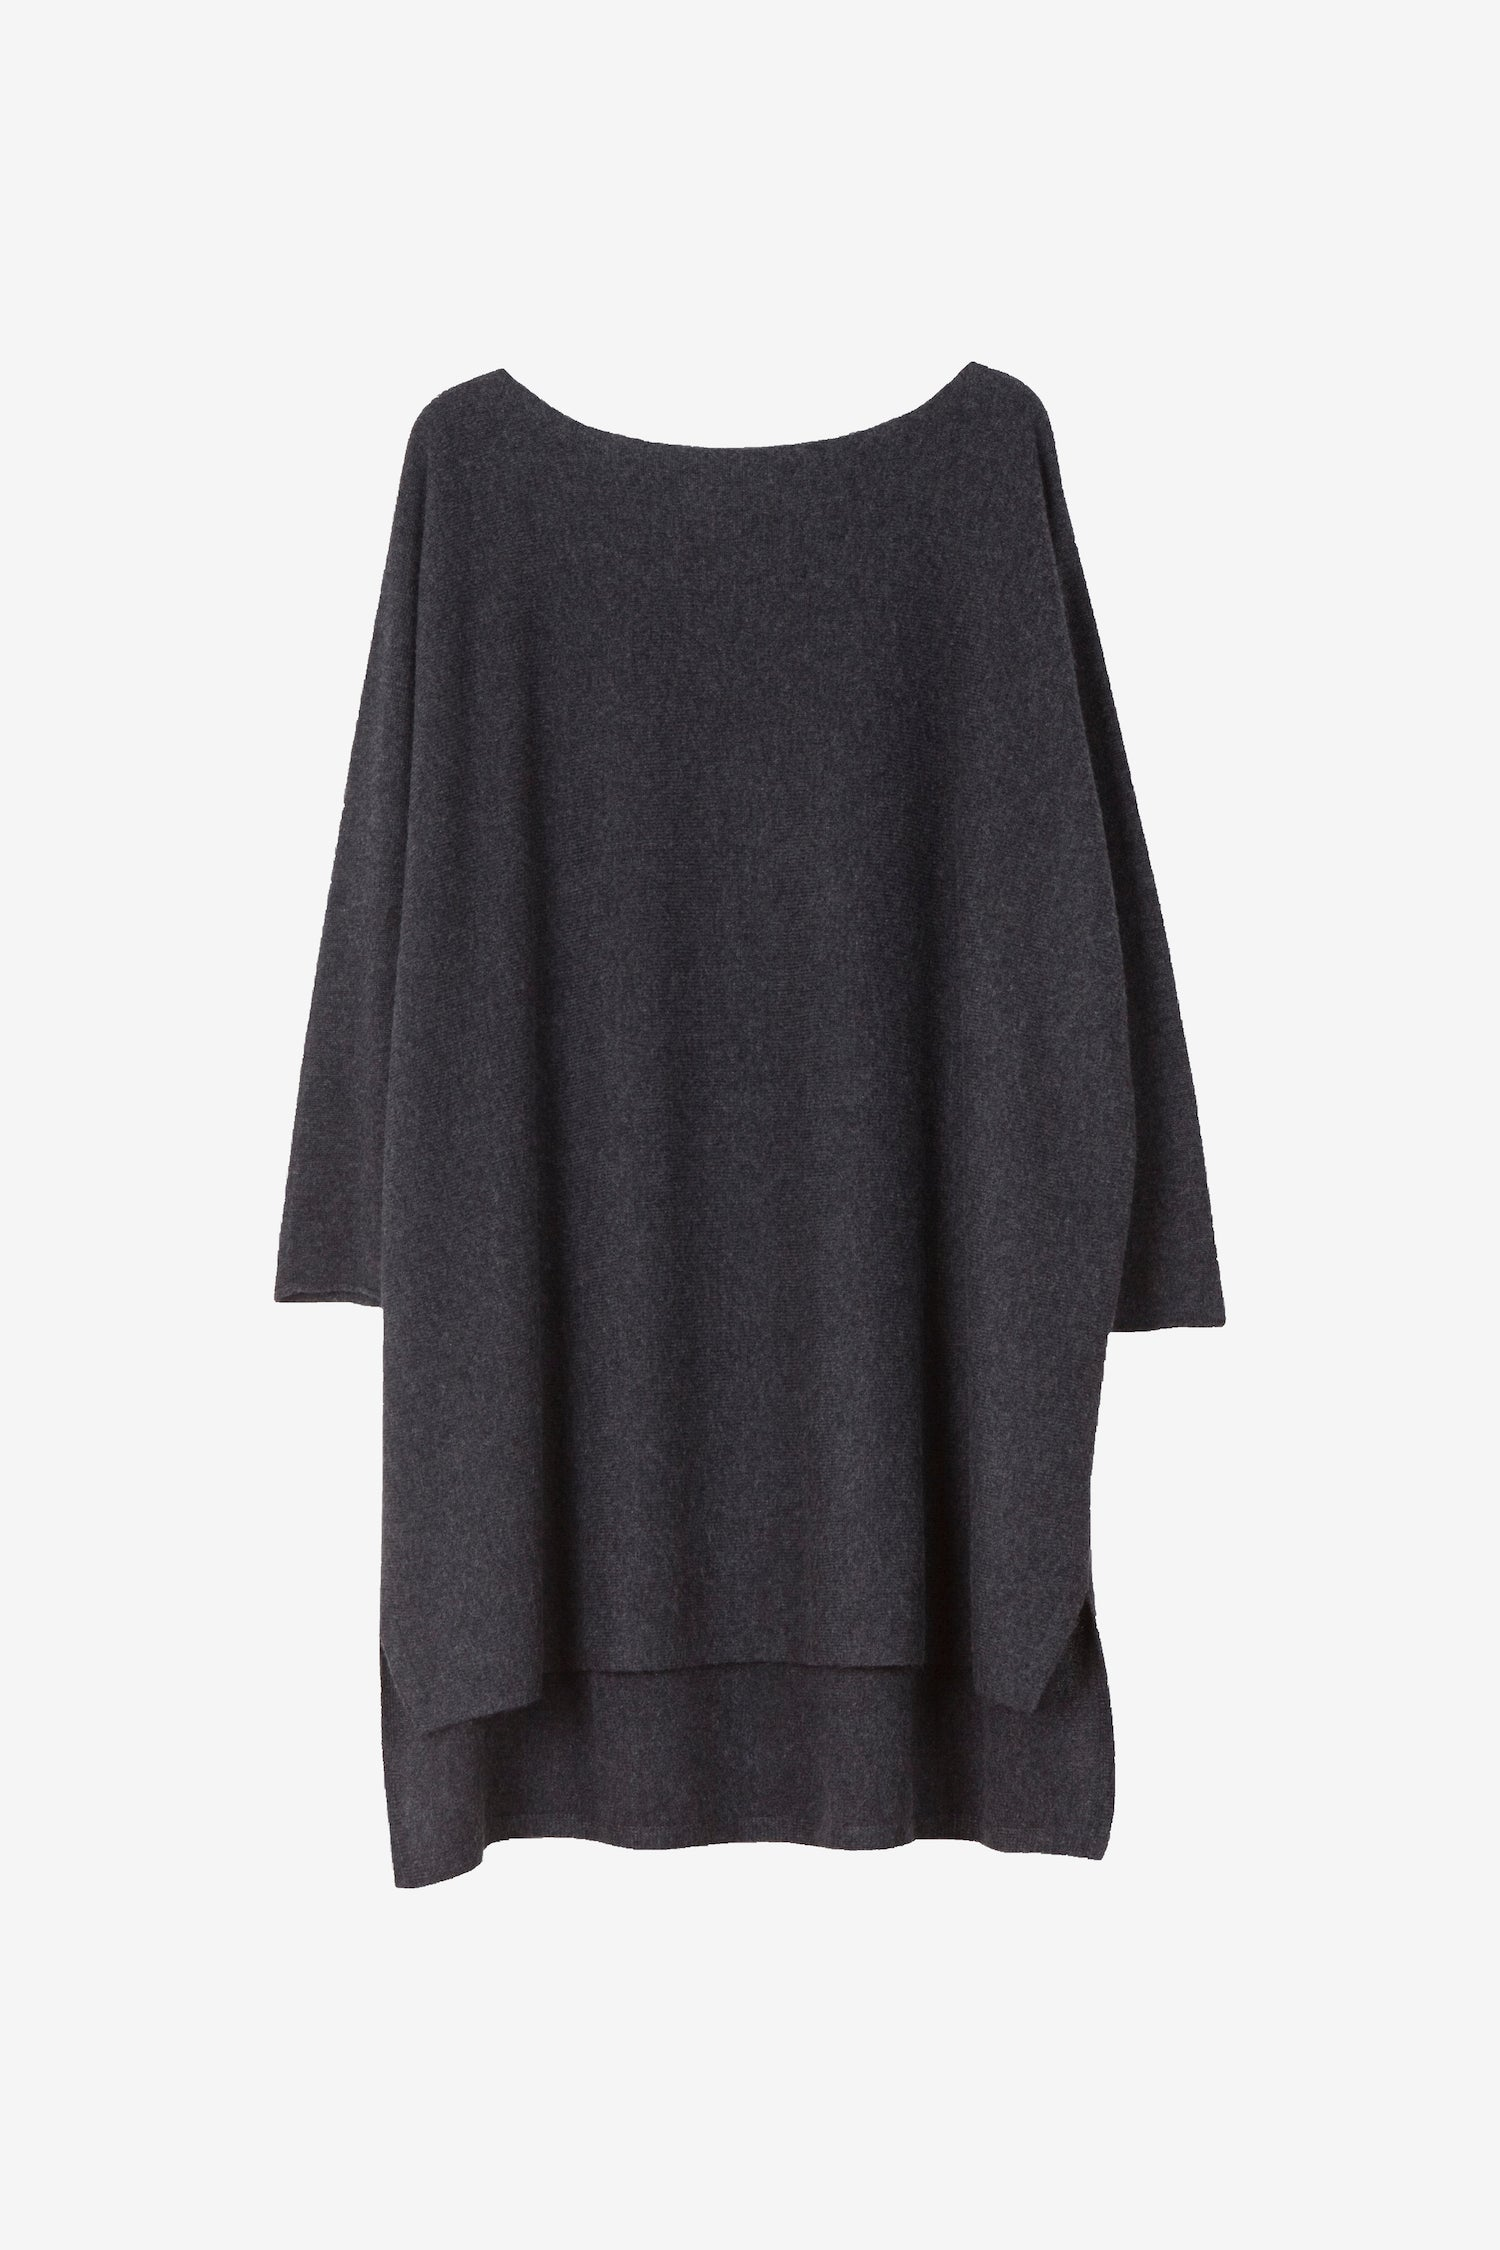 Eelia cashmere tunic in dark grey